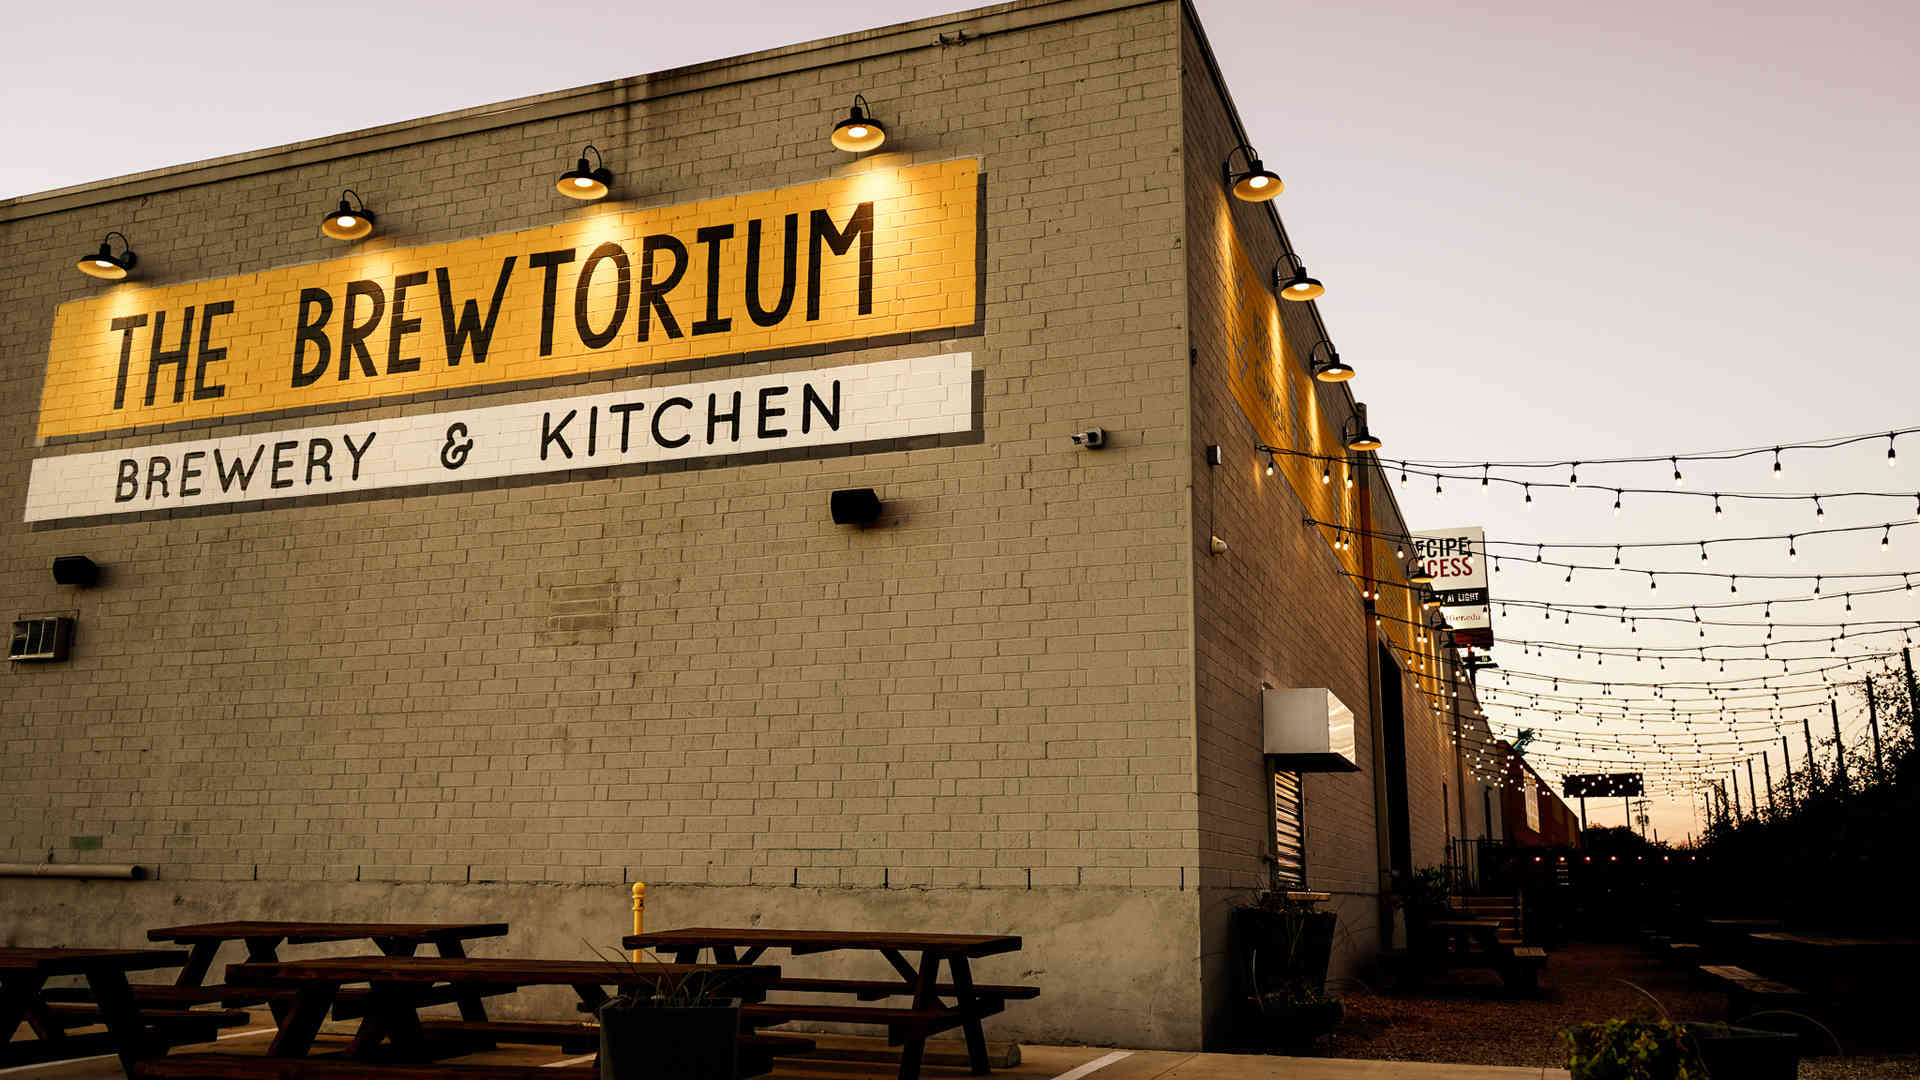 The Brewtorium Brewery & Kitchen